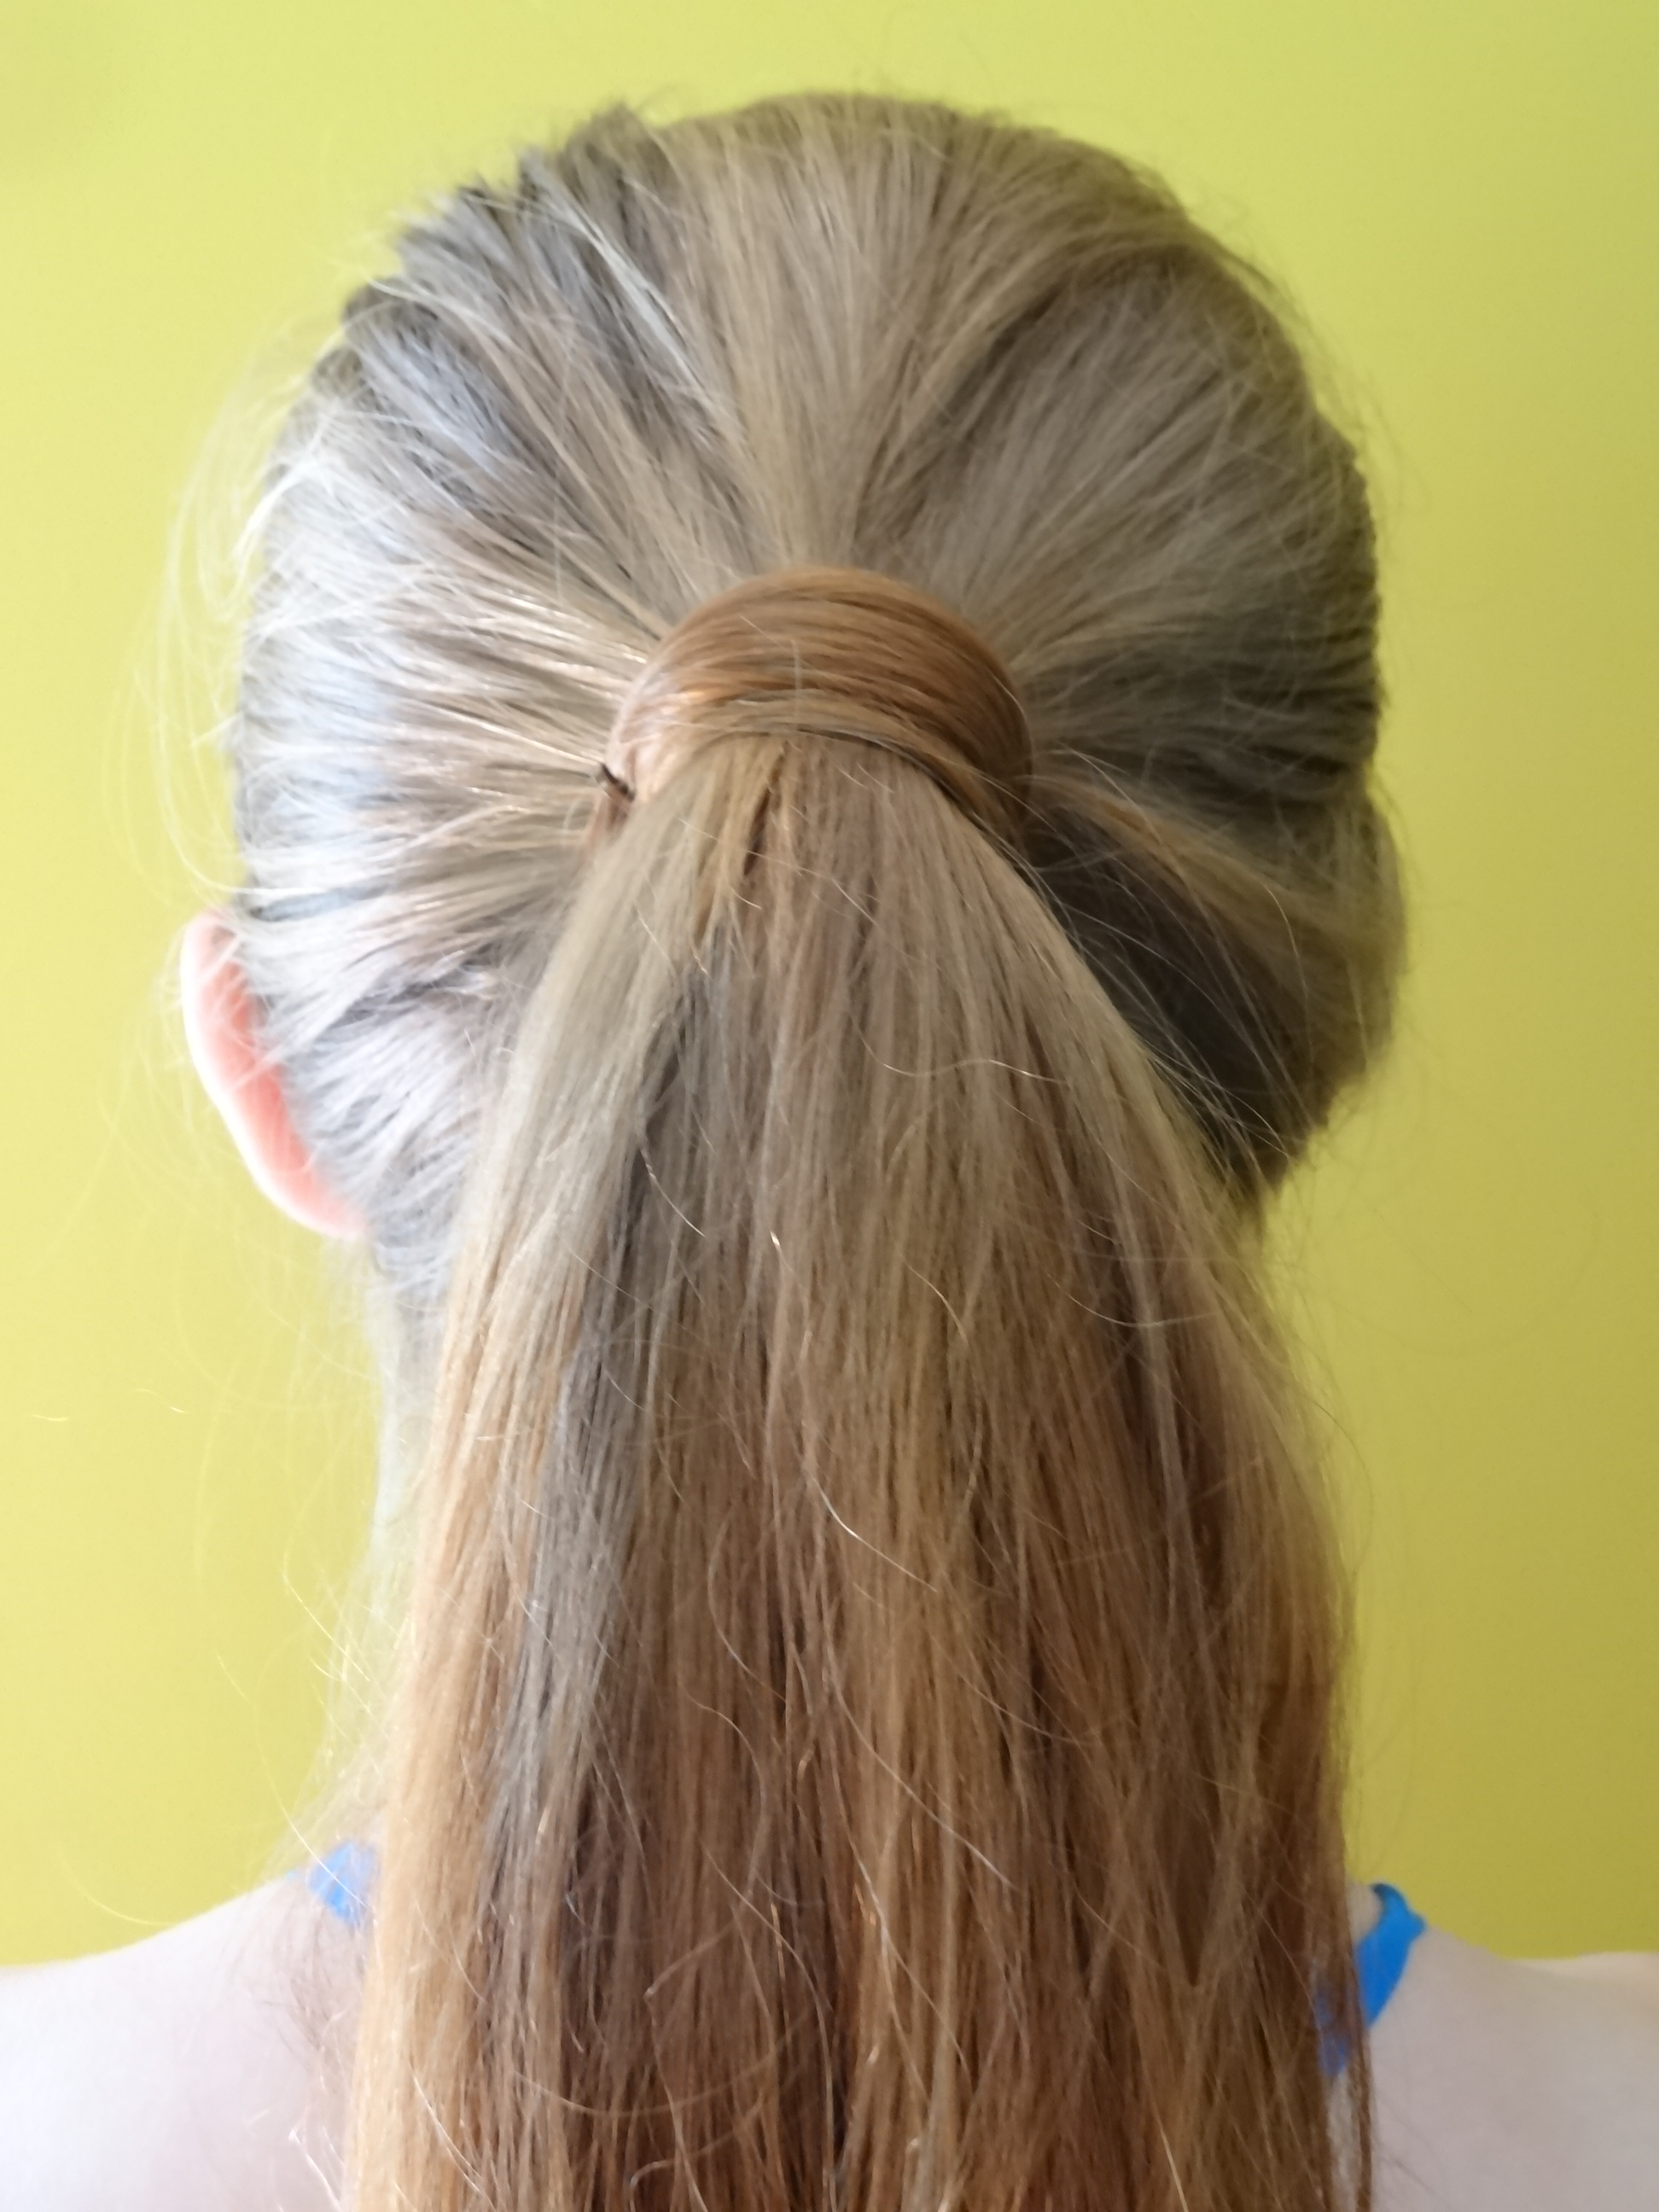 Ponytail With Hair Wrapped Around : ponytail, wrapped, around, File:Hair, Wrapped, Ponytail.JPG, Wikimedia, Commons